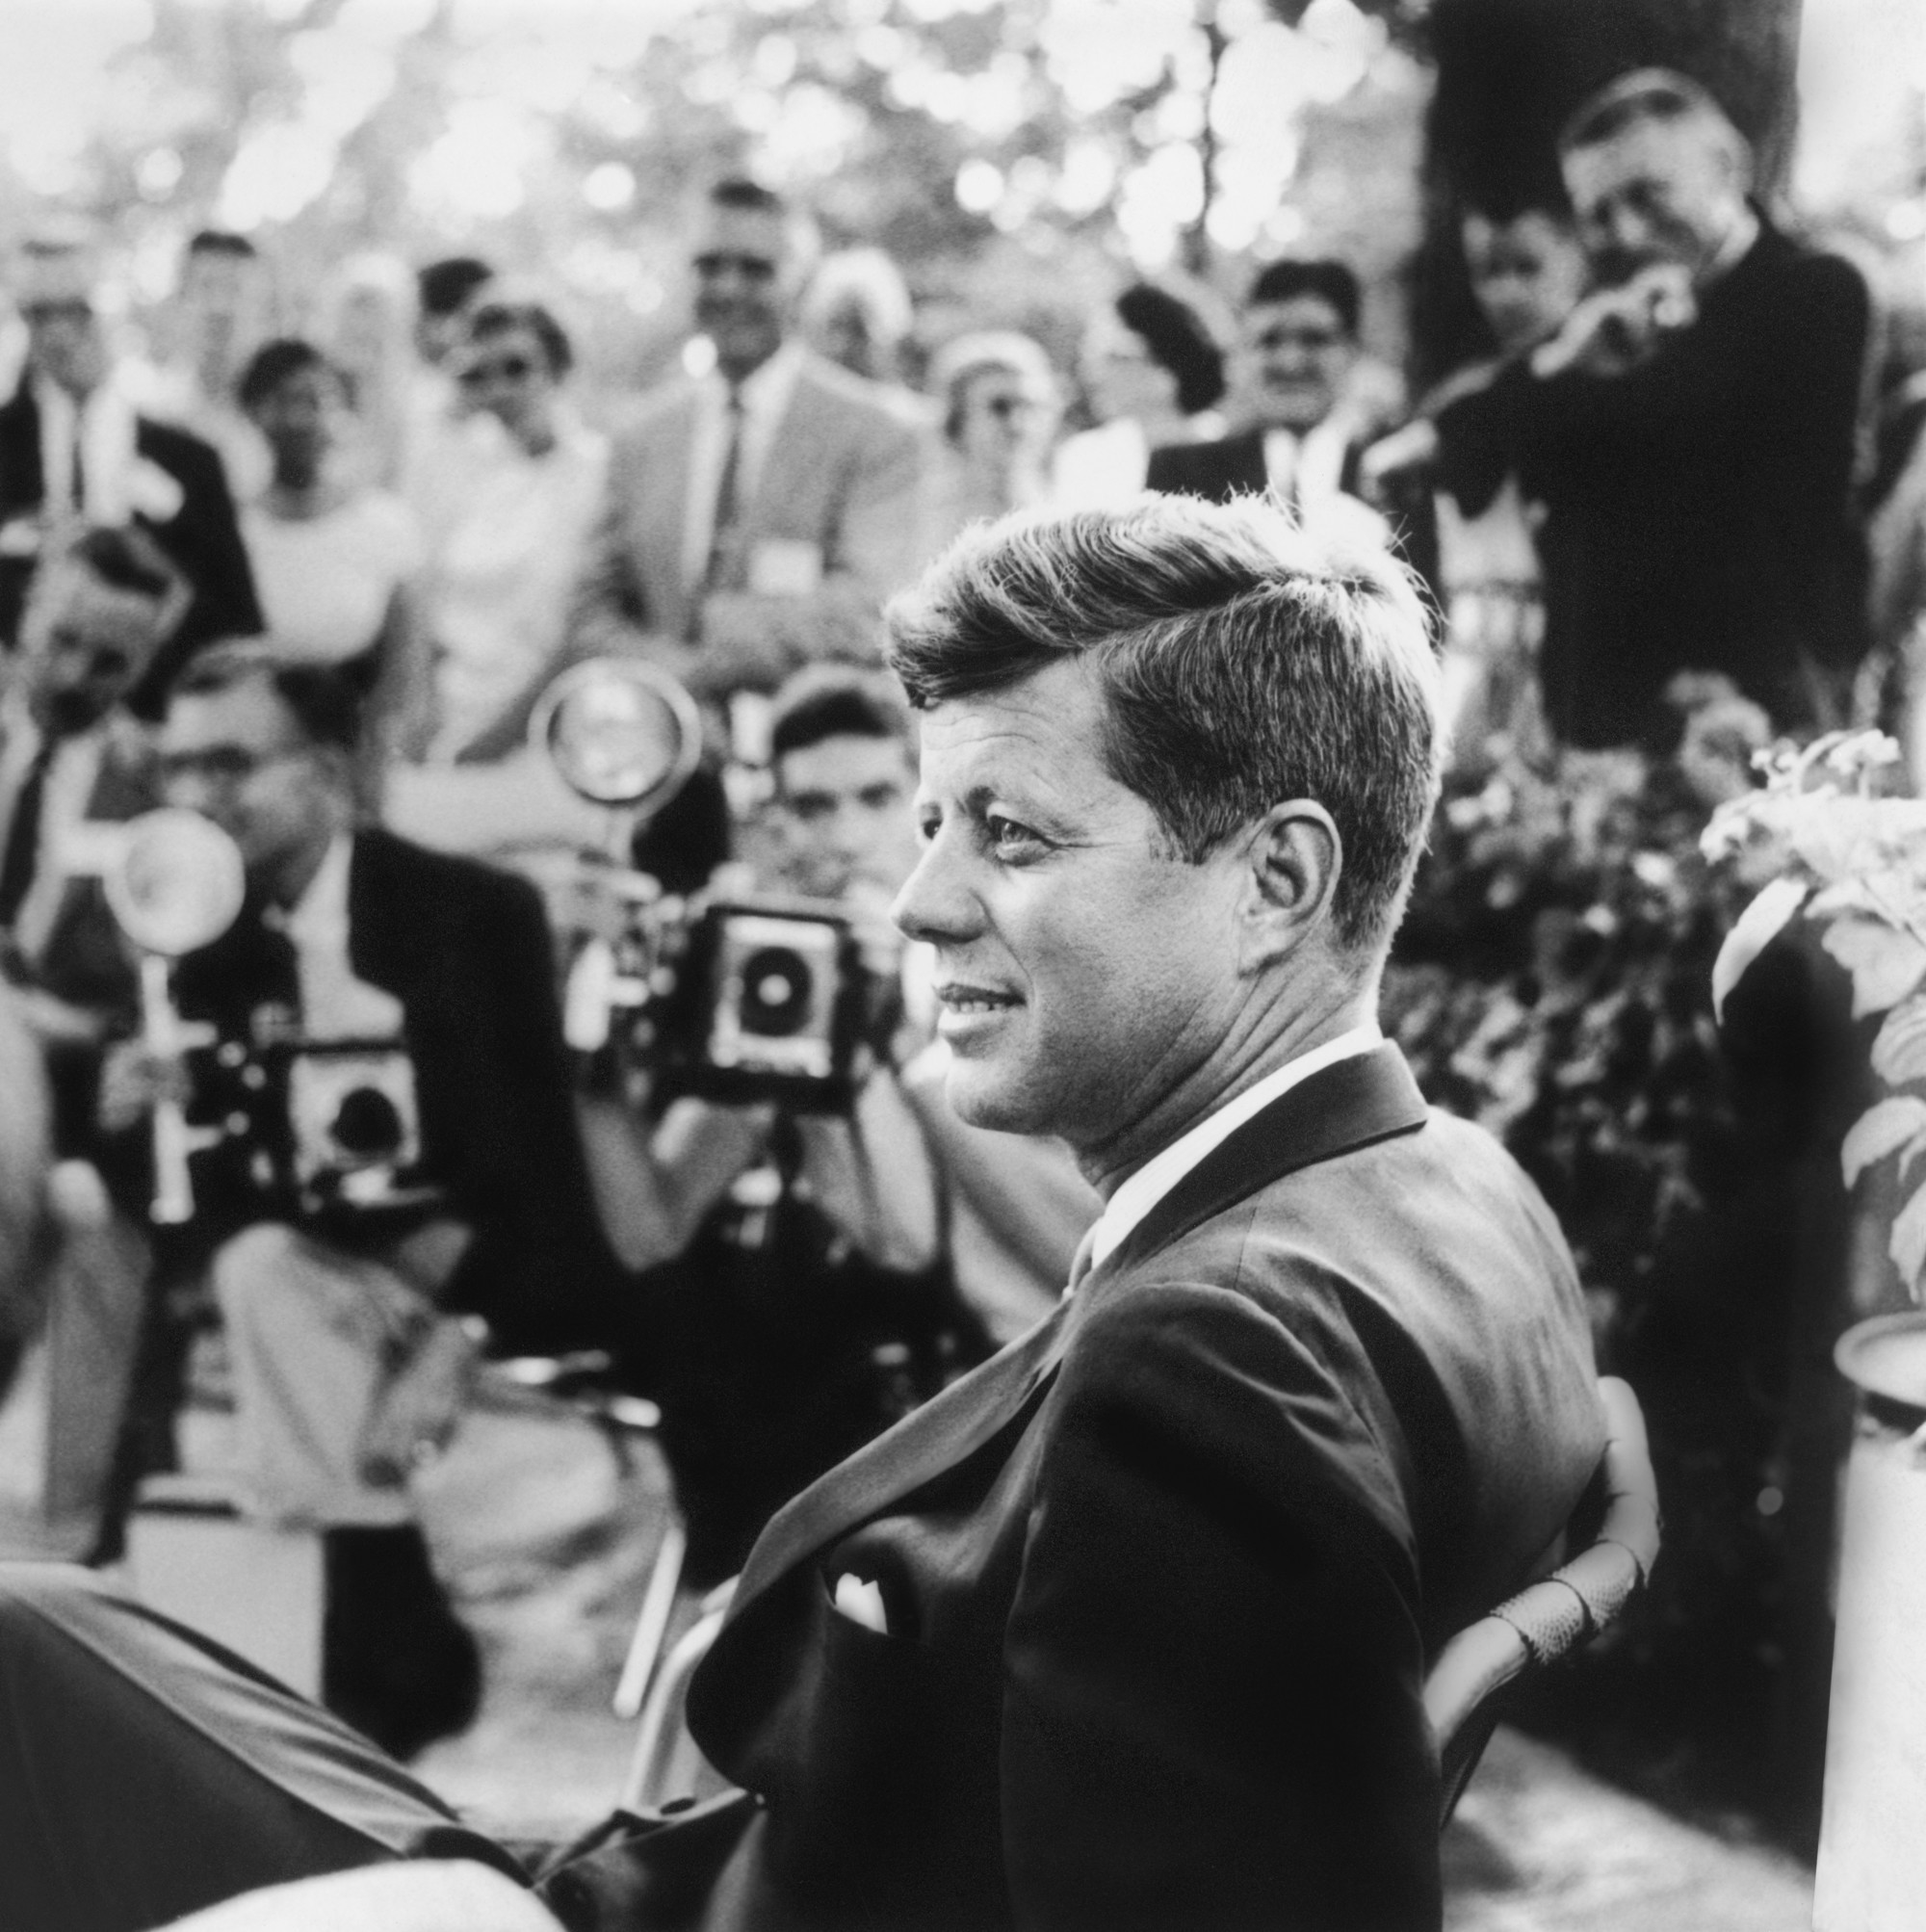 This photo of John F. Kennedy was taken at a 1959 press conference in Omaha, Neb. Jacqueline Kennedy later chose this image for her husband's memorial card.